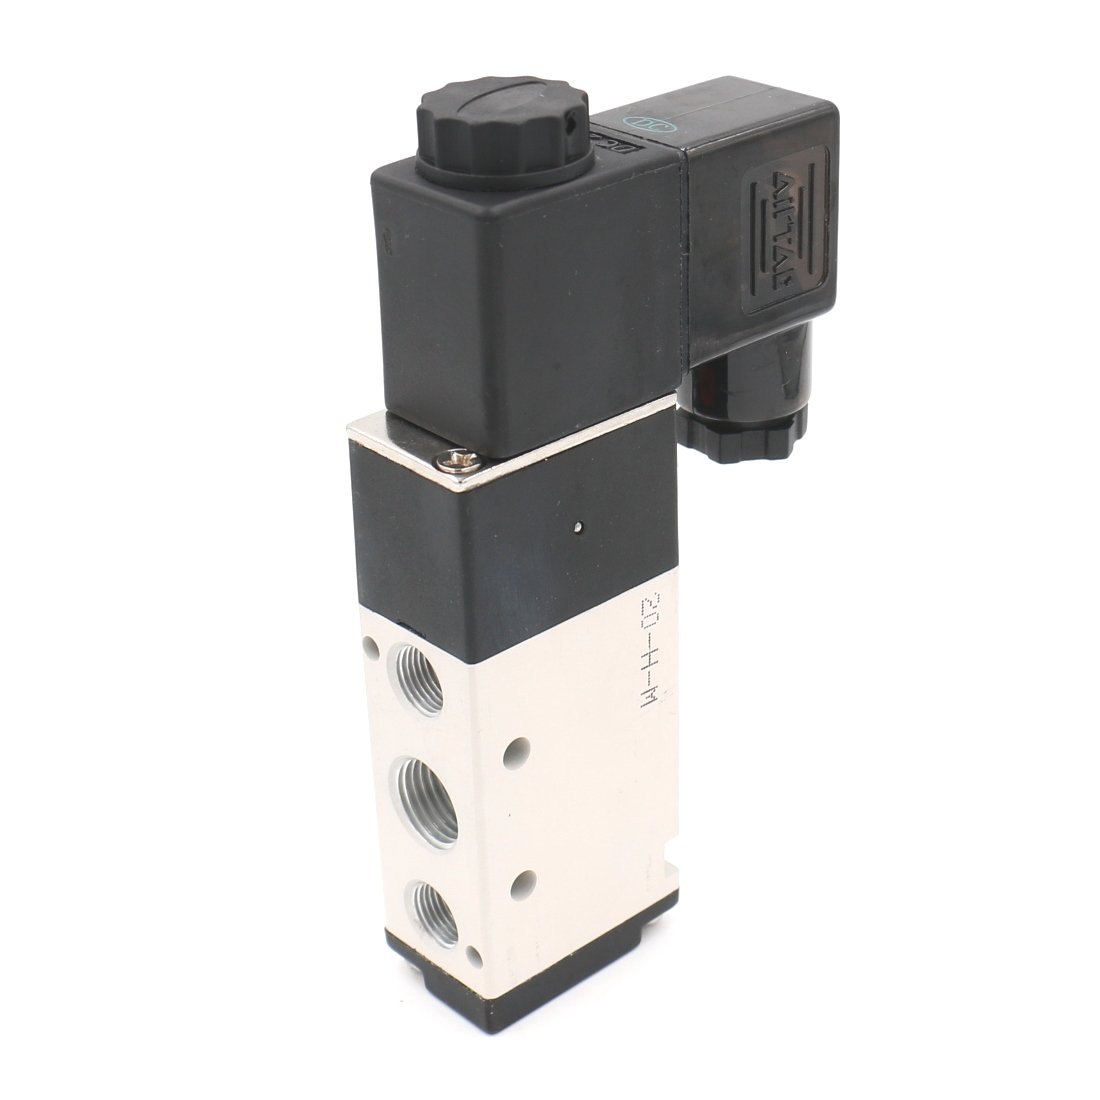 Baomain Pneumatic Air Control Solenoid Valve 4V210-08 DC24V 5 Way 2 Position PT1/4'' Internally Piloted Acting Type Single Electrical Control by Baomain (Image #3)